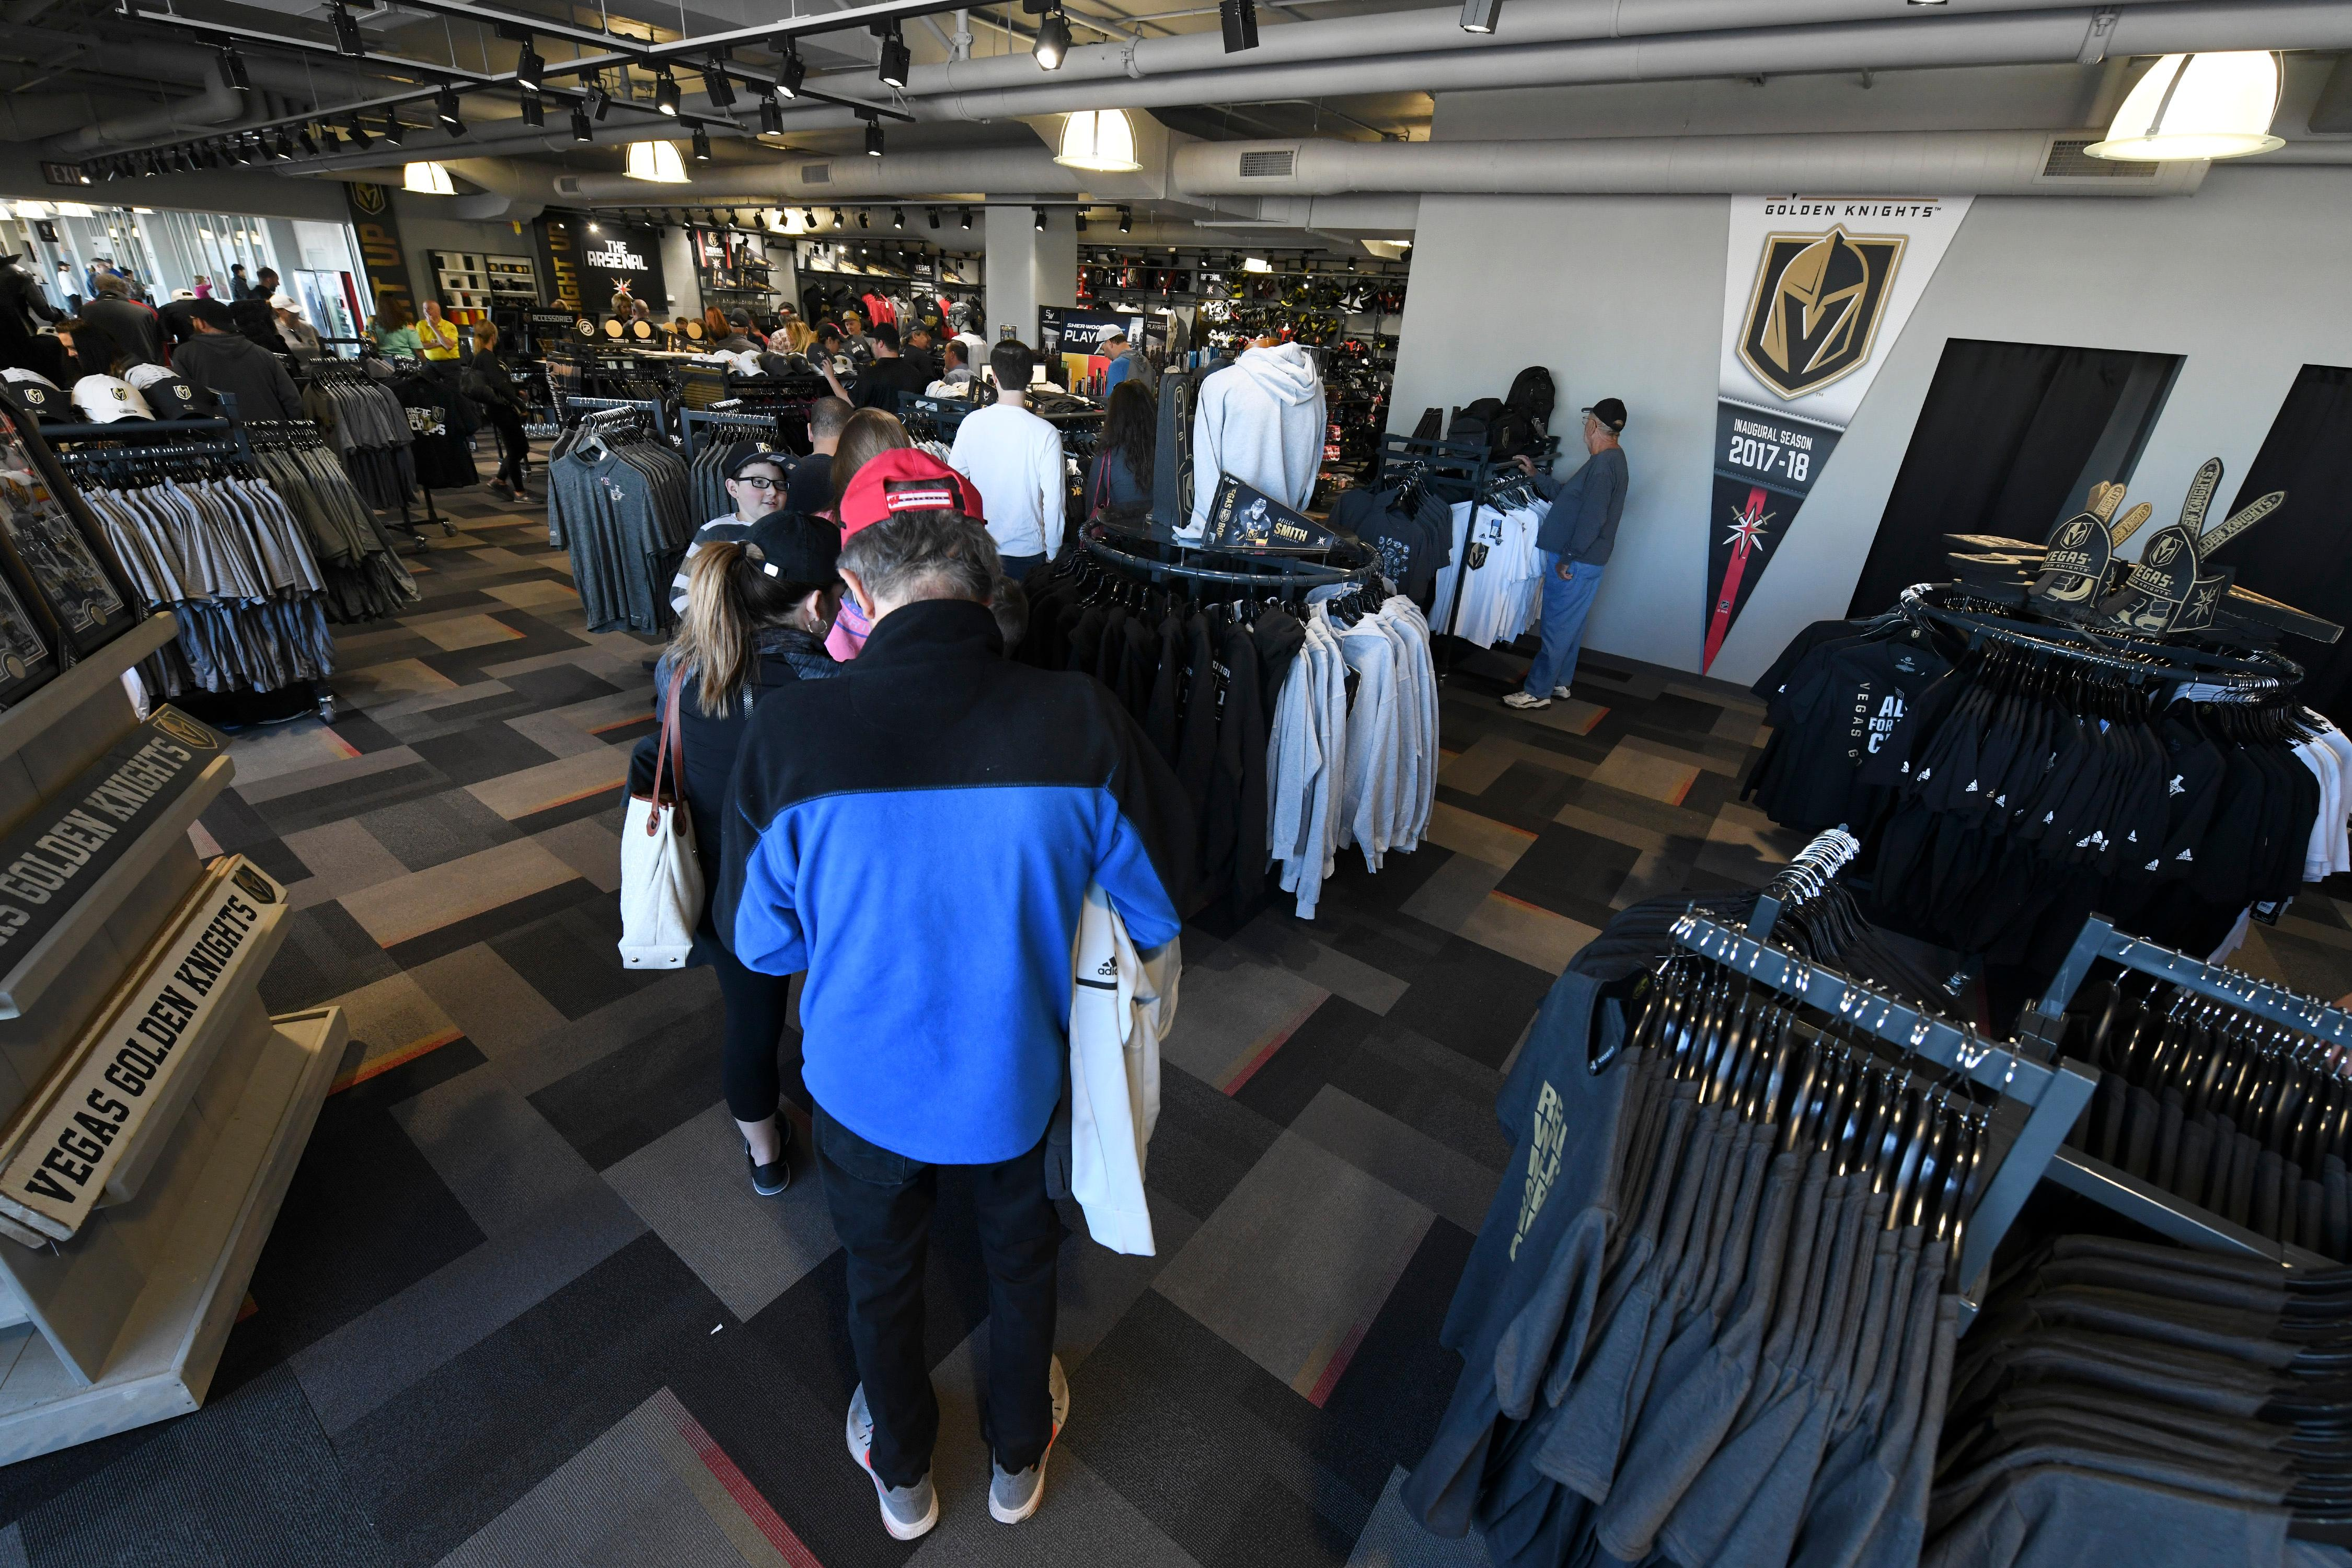 A long line of fans snakes through The Arsenal, the Vegas Golden Knights gift shop, as they wait to purchase items Friday, April 20, 2018, at City National Arena in Las Vegas. CREDIT: Sam Morris/Las Vegas News Bureau